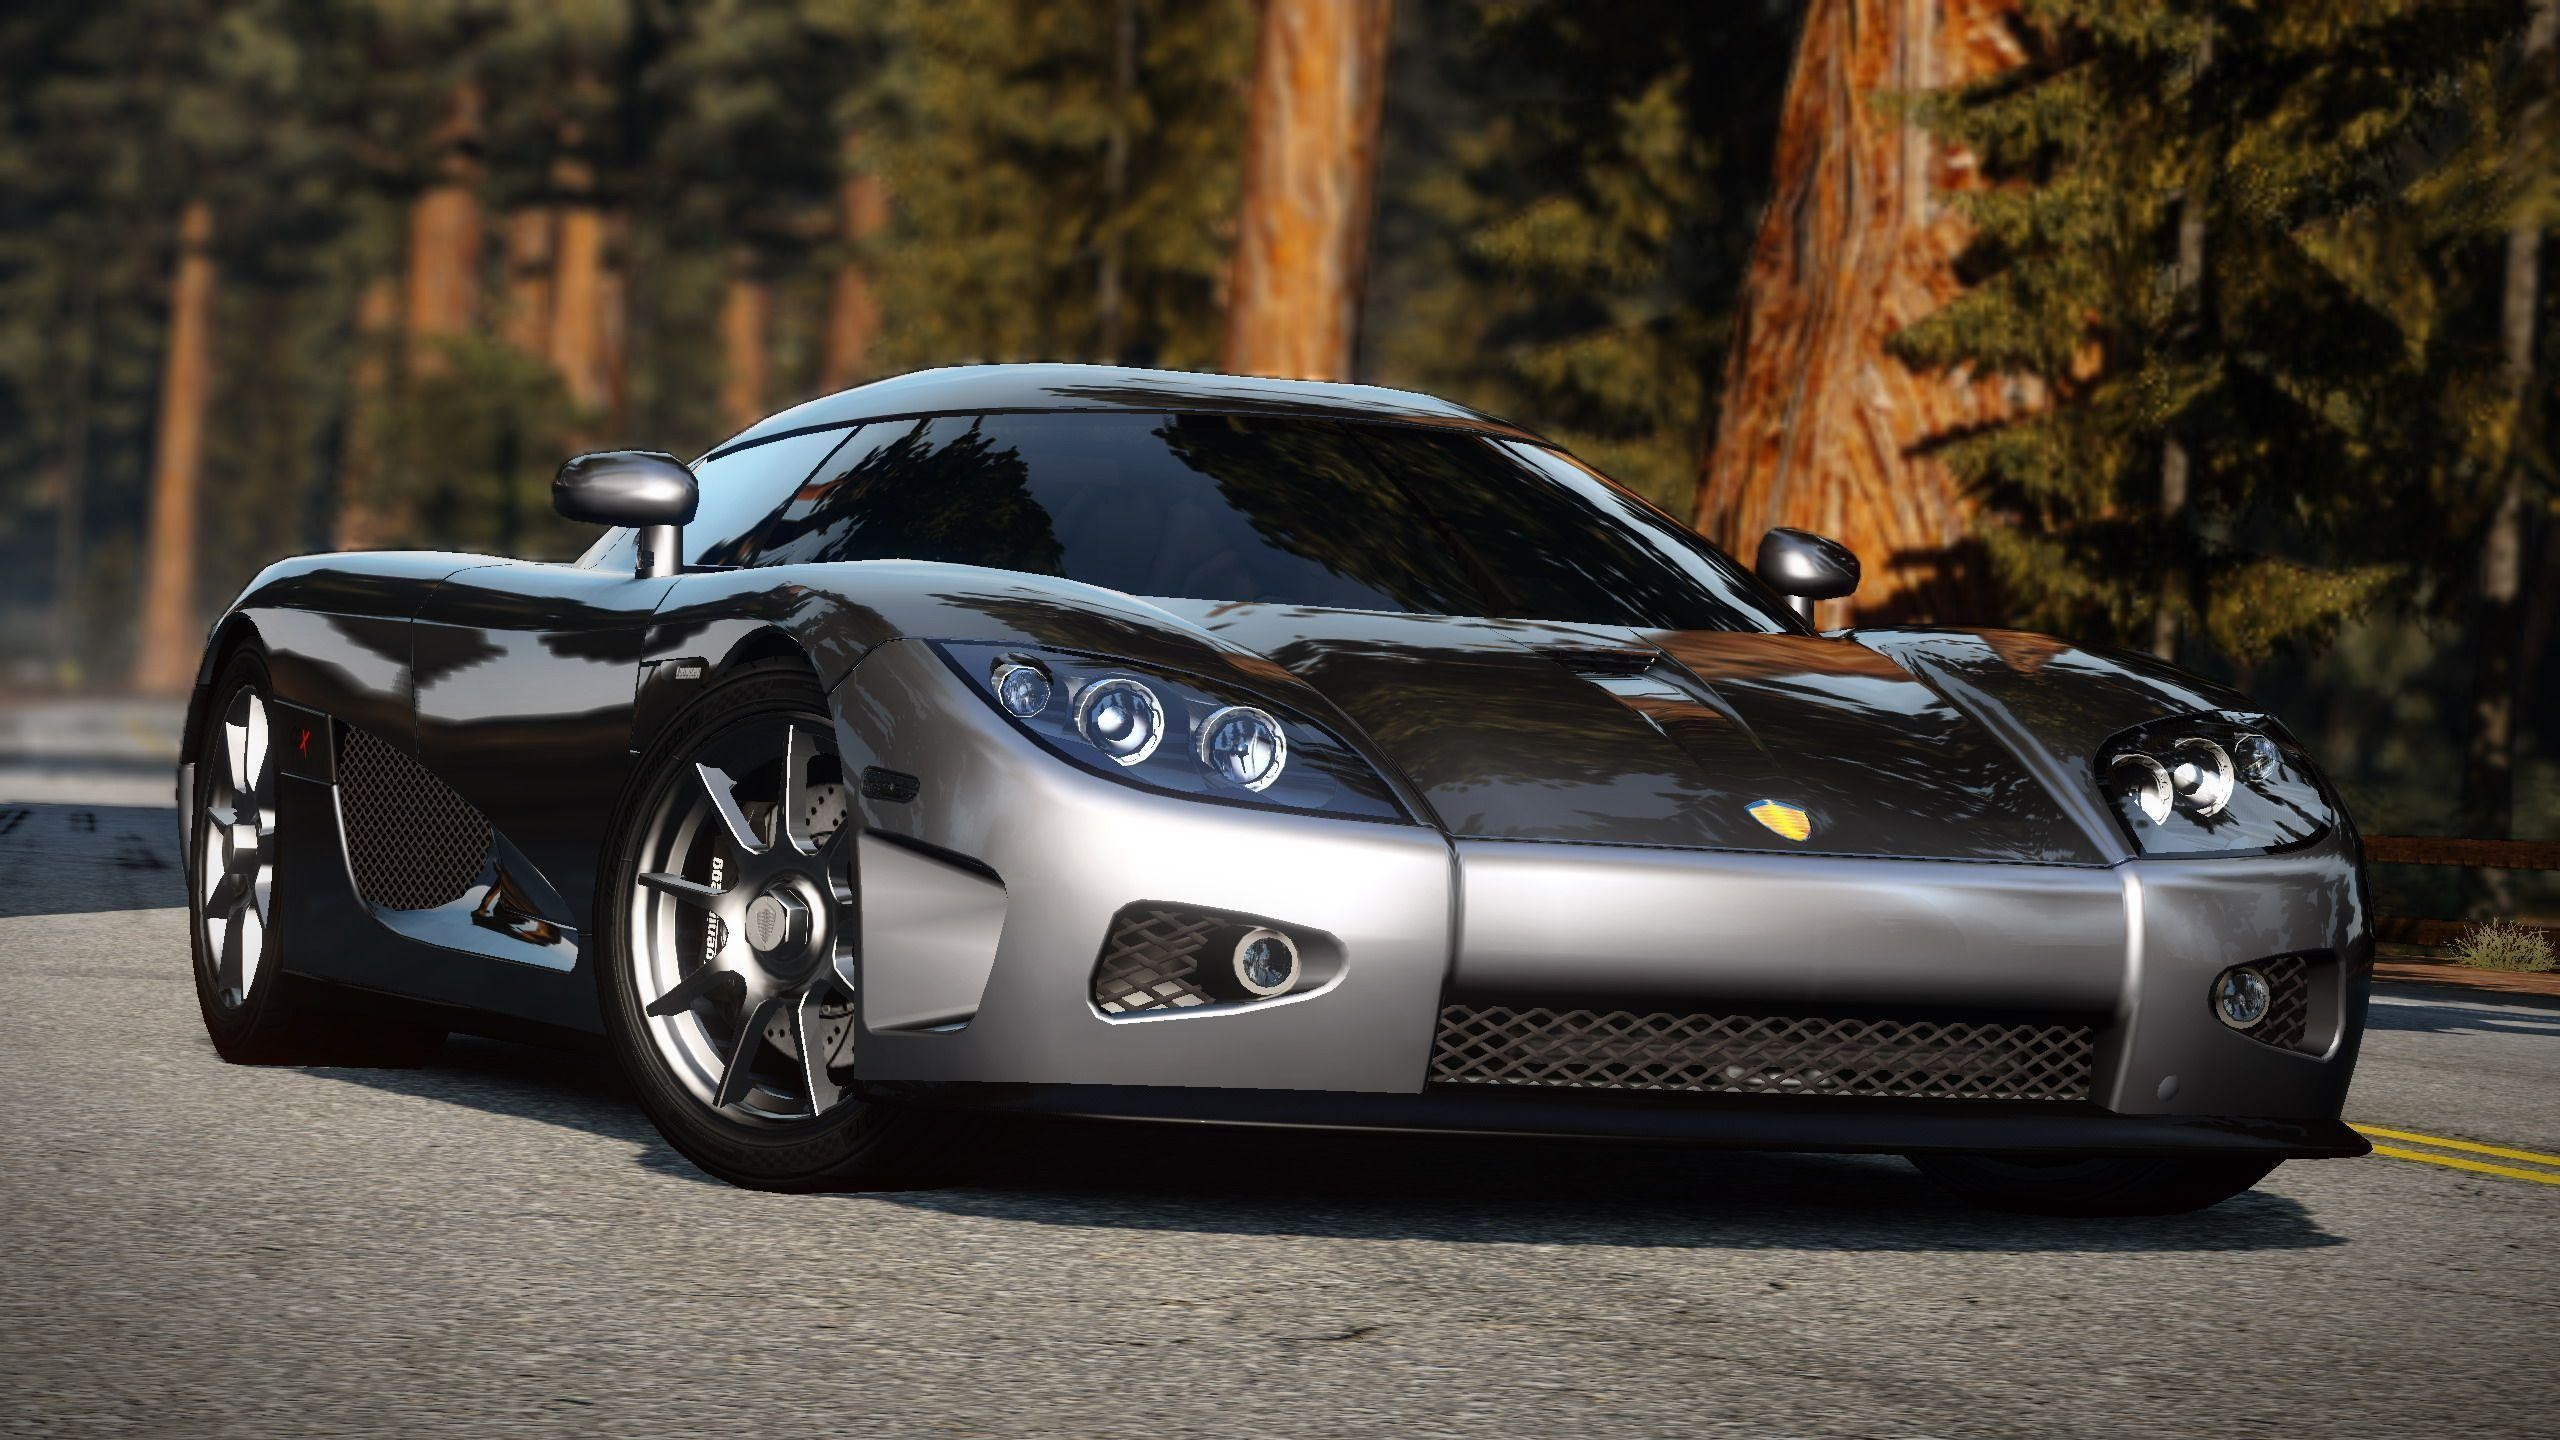 Koenigsegg Ccxr Trevita >> Koenigsegg Ccxr Trevita Wallpapers 69 Images